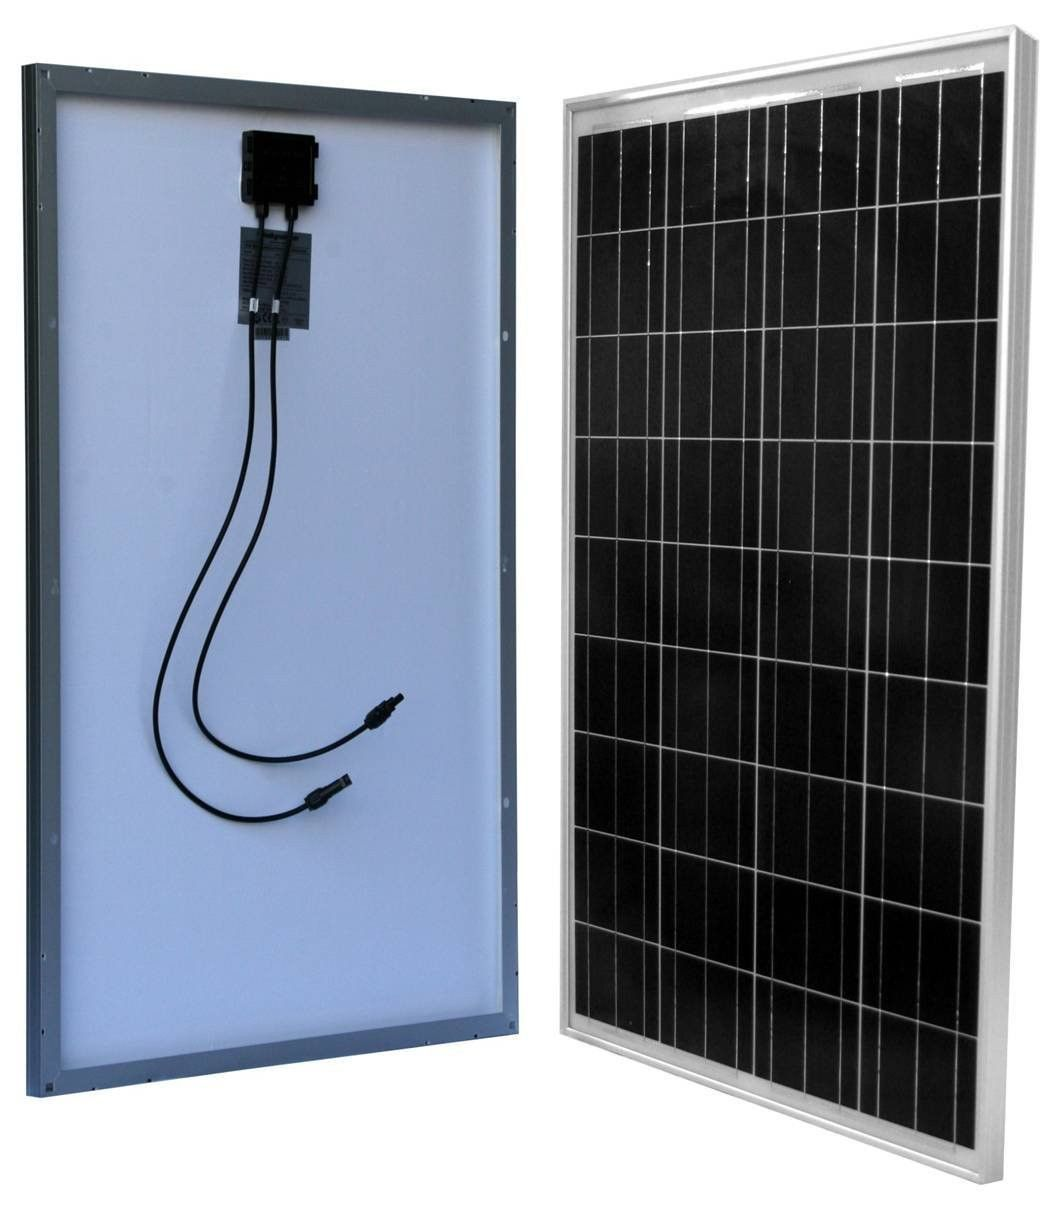 100 Watt Solar Panel For 12 Volt Battery Charging Rv Boat Off Grid Best Solar Panels Solar Panels 100 Watt Solar Panel